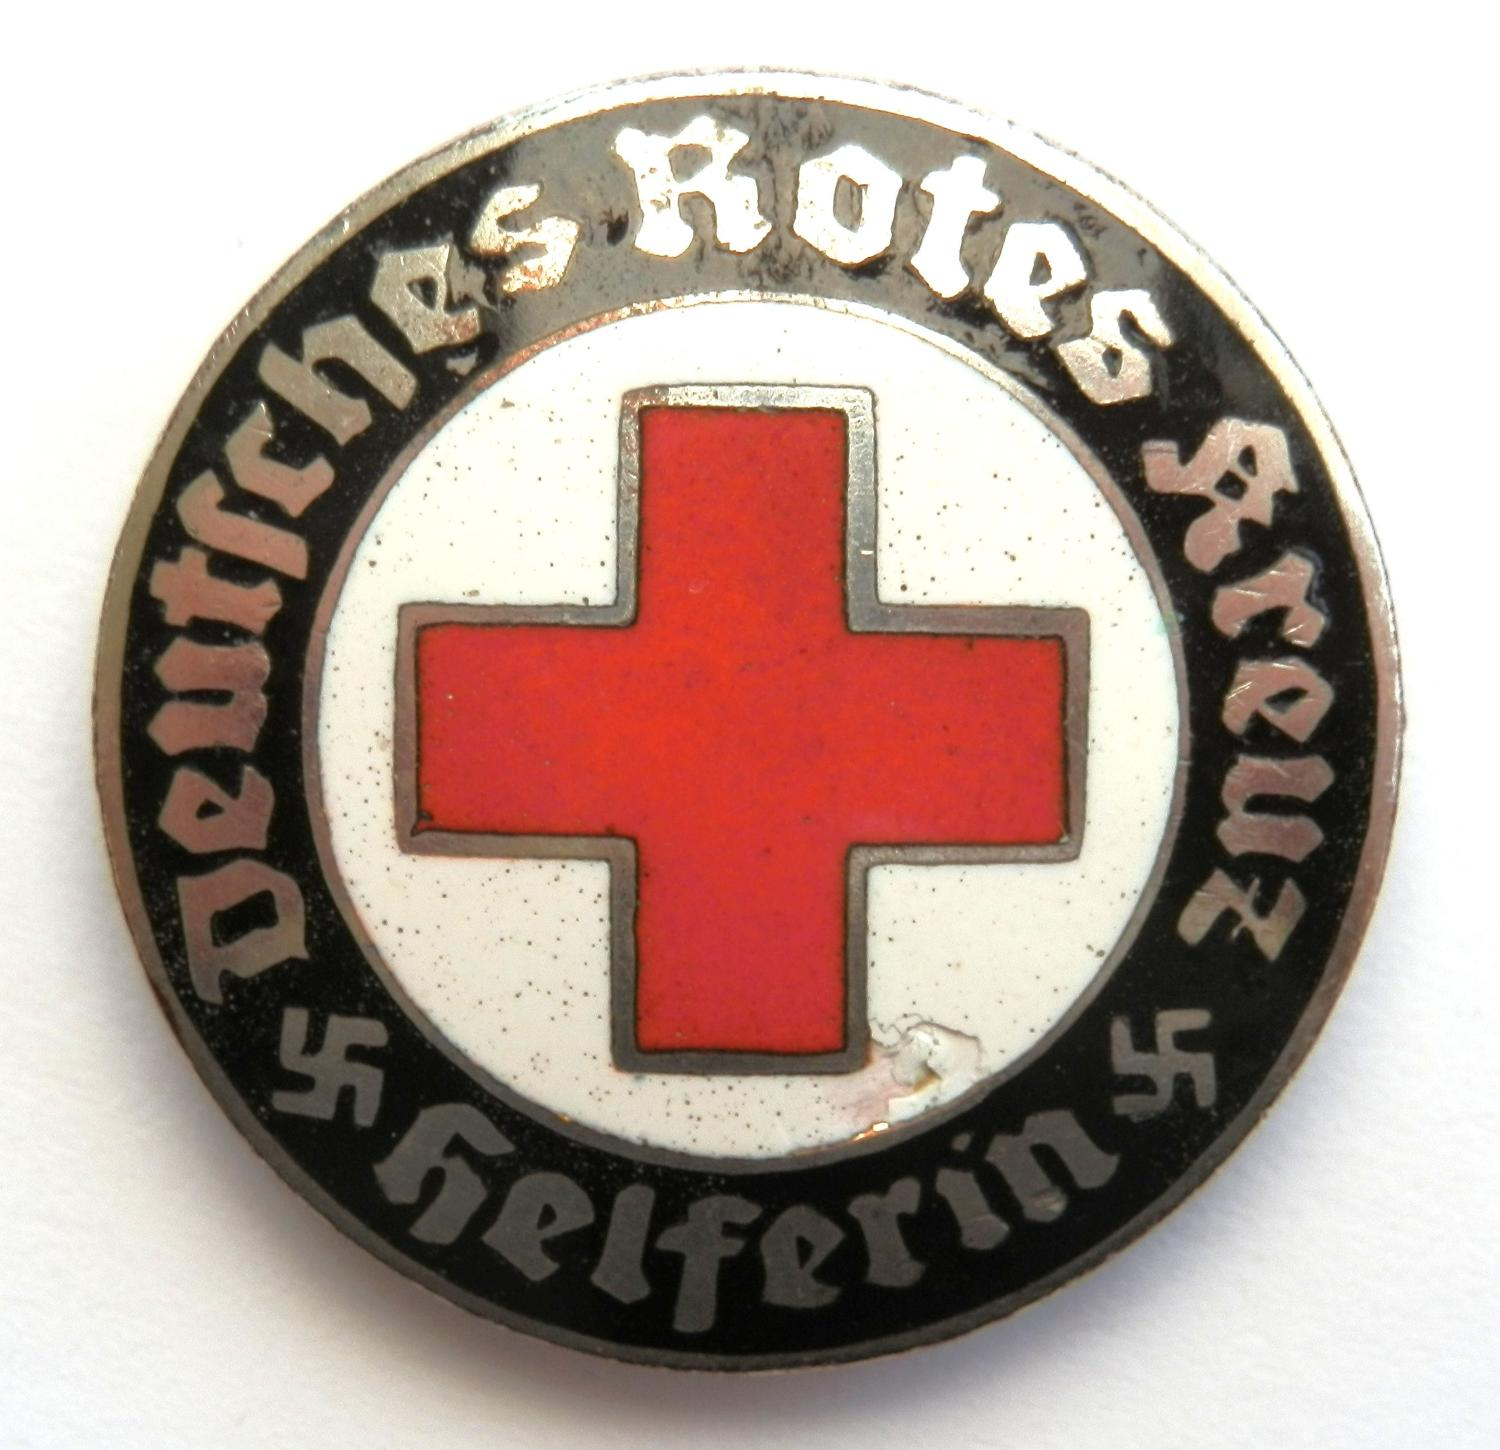 DRK (German Red Cross) service brooch.